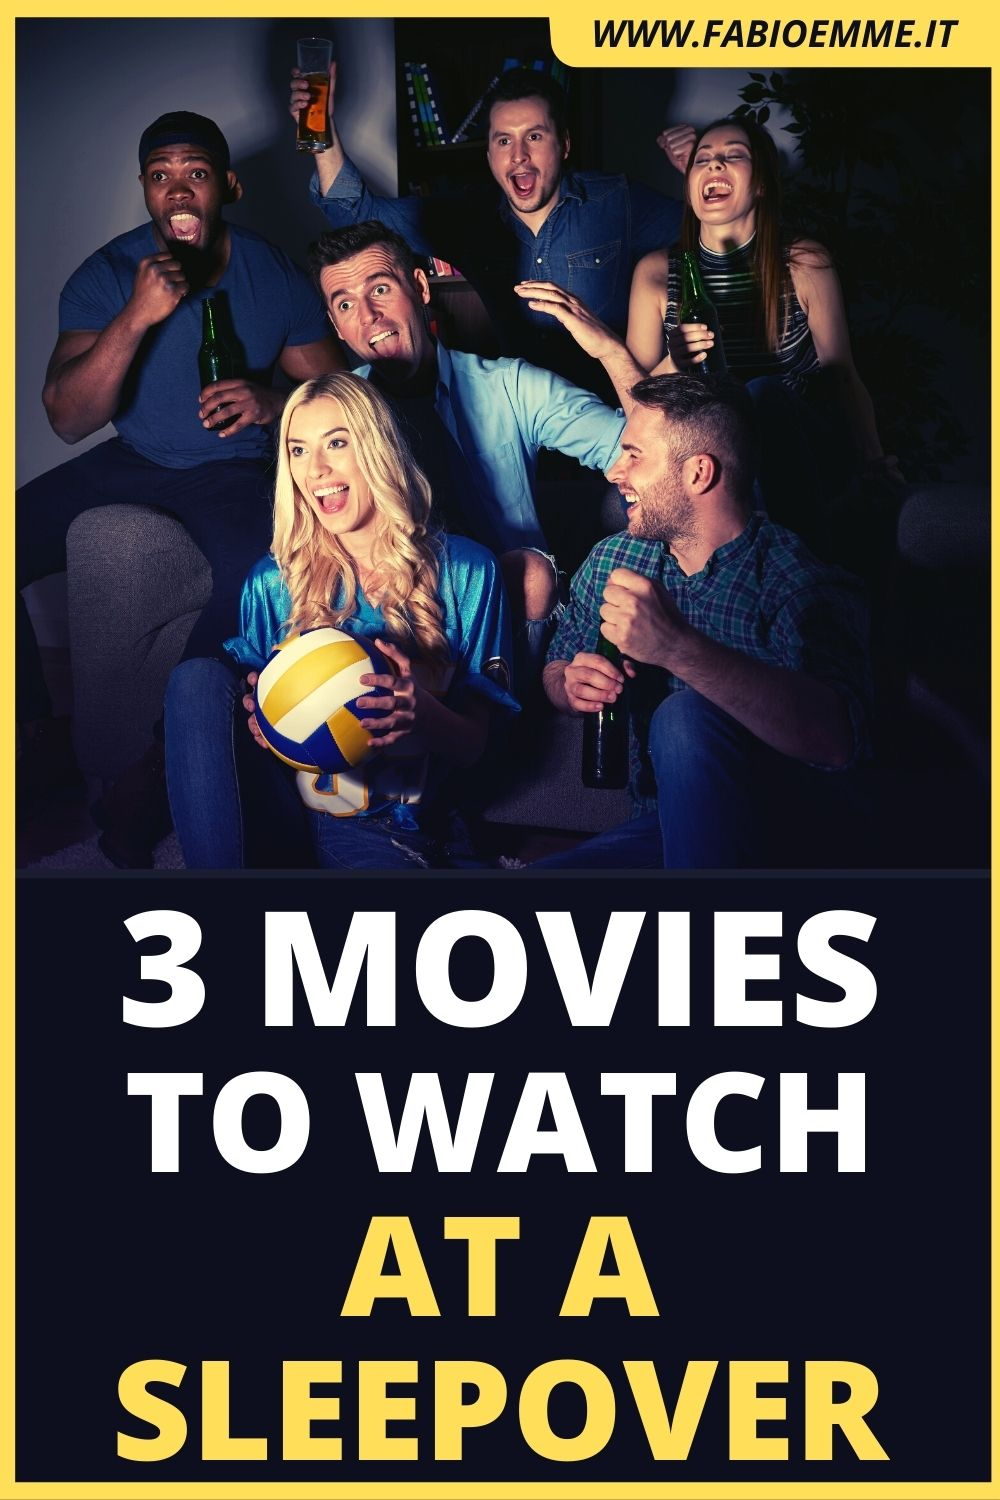 3 Movies to Watch at a Sleepover